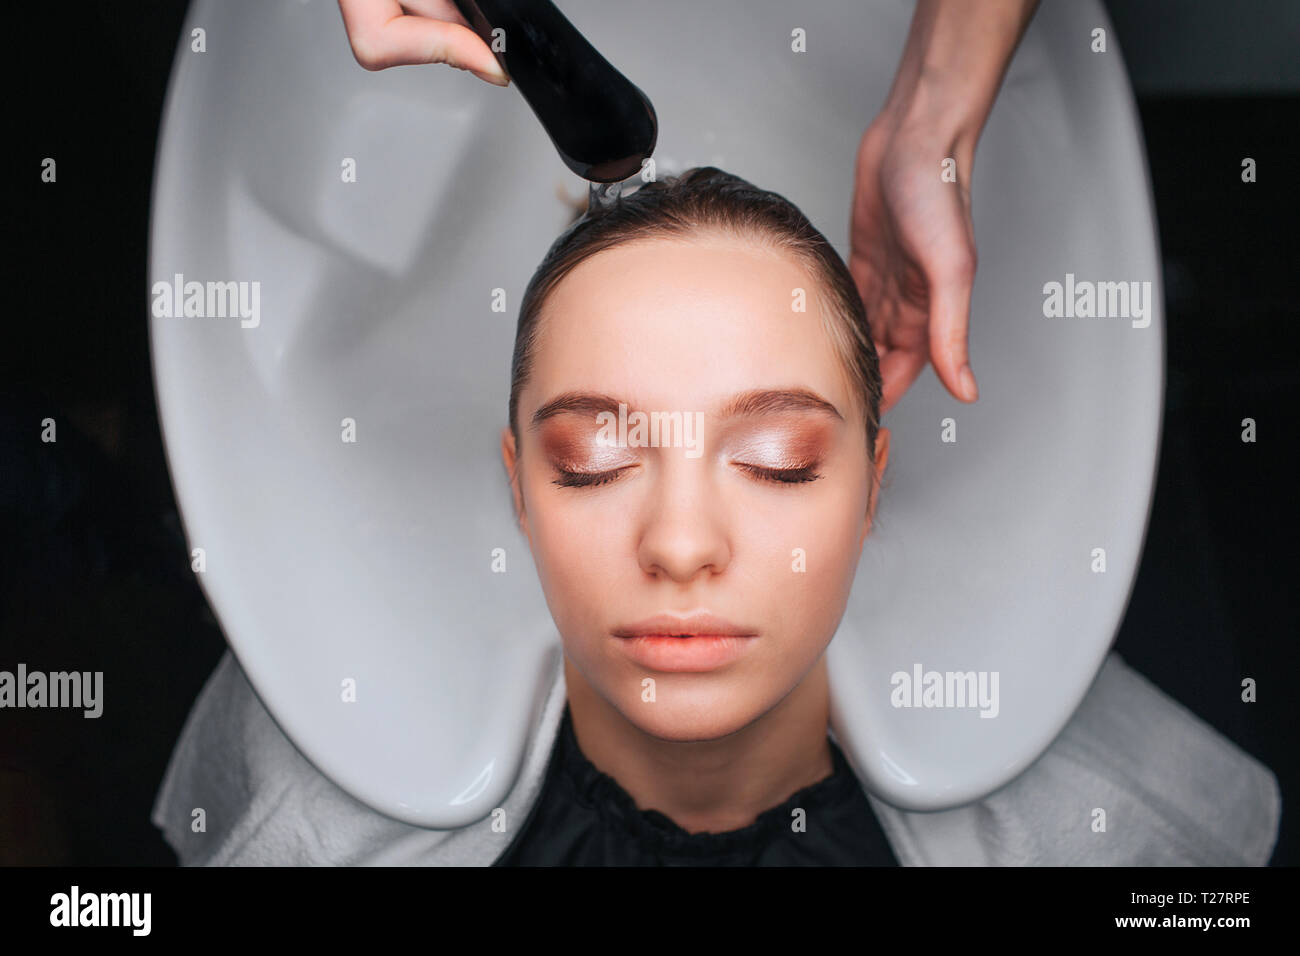 Top view of beautiful young woman with closed eyes sitting on white hair wash sink while hairdresser washing her hair. Hair care in salon - Stock Image